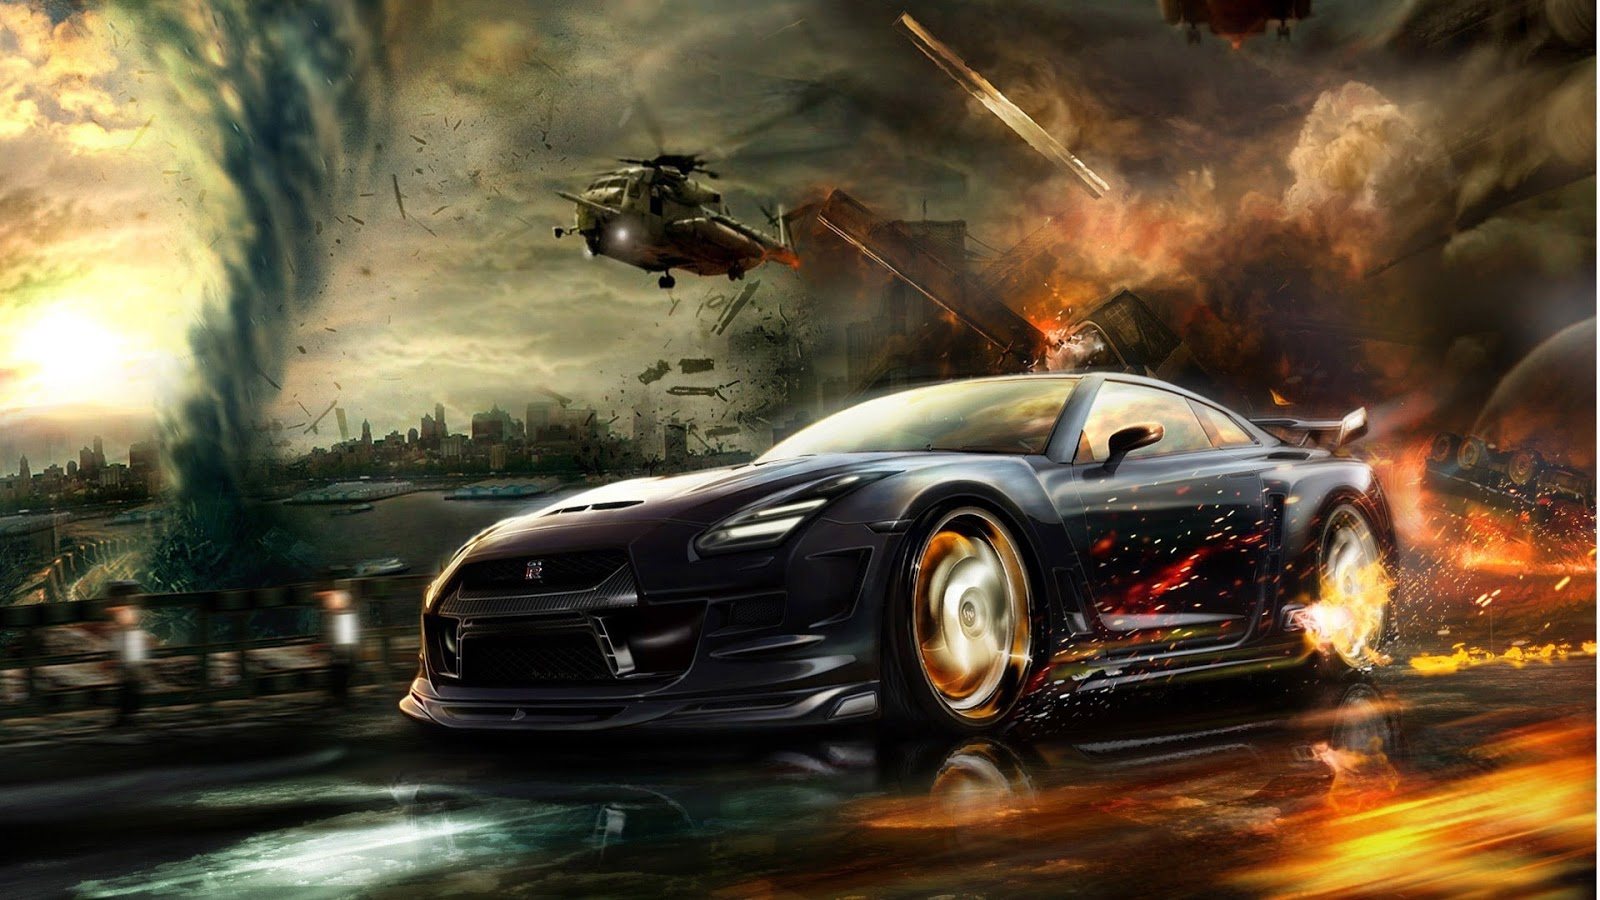 Ultra HD Wallpapers3d images latest ultra pictures cars 1600x900